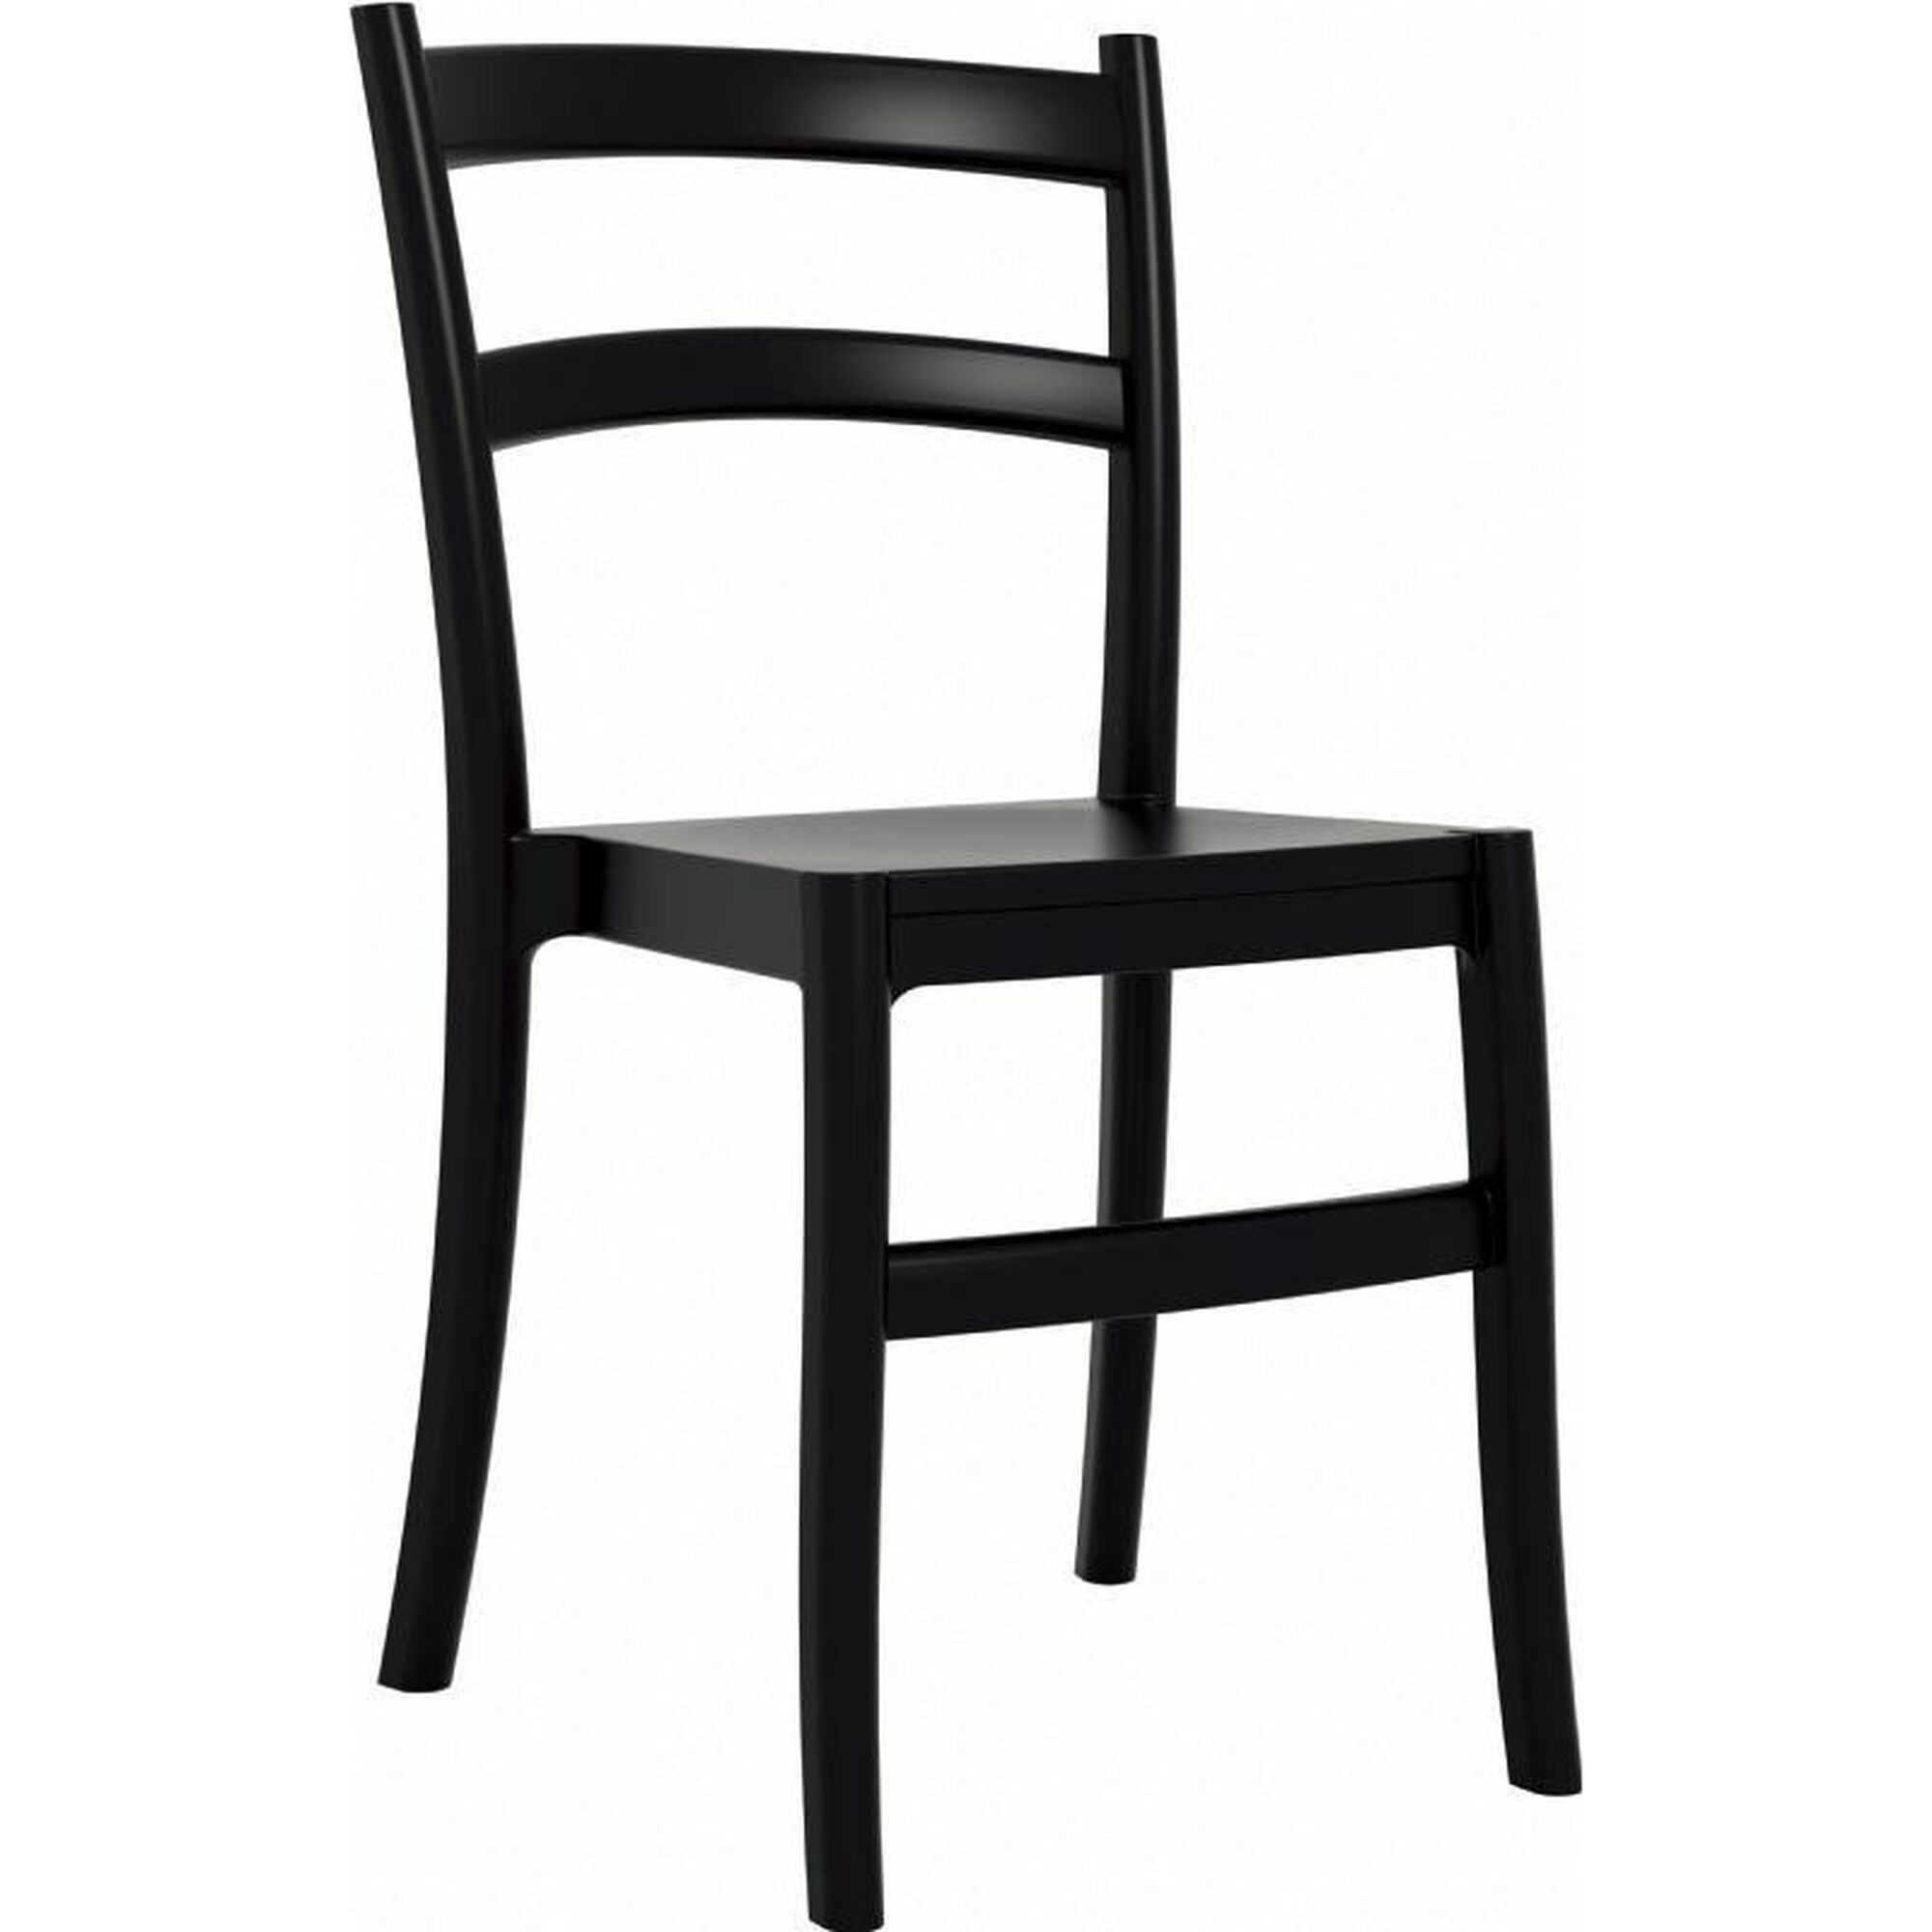 Stupendous Tiffany Outdoor Resin Cafe Style Stackable Dining Chair Black Cjindustries Chair Design For Home Cjindustriesco